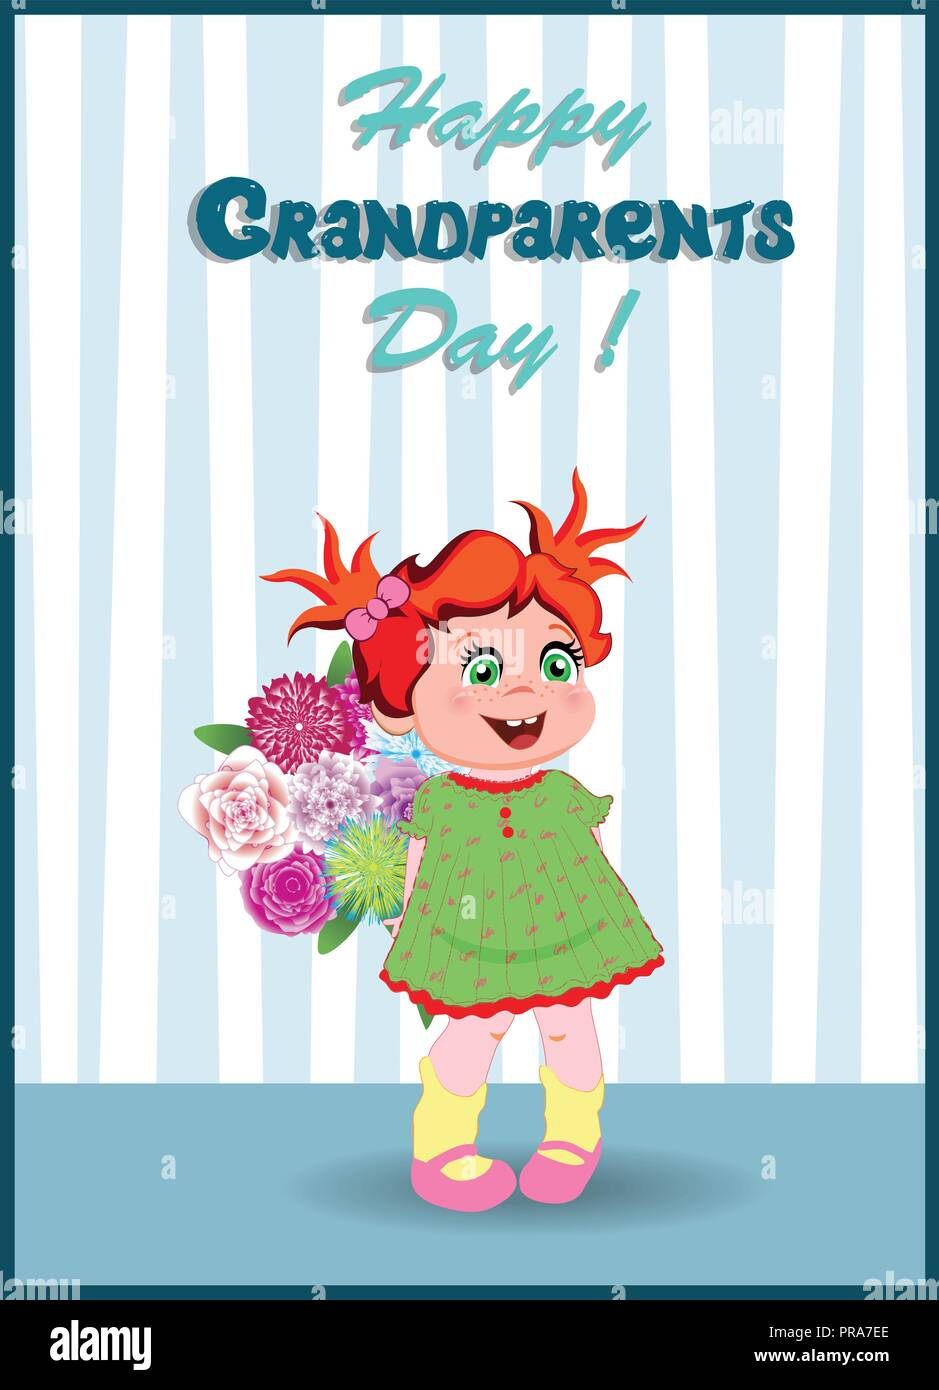 Grandparents Day Greeting Card With Cute Cartoon Little Grandchild